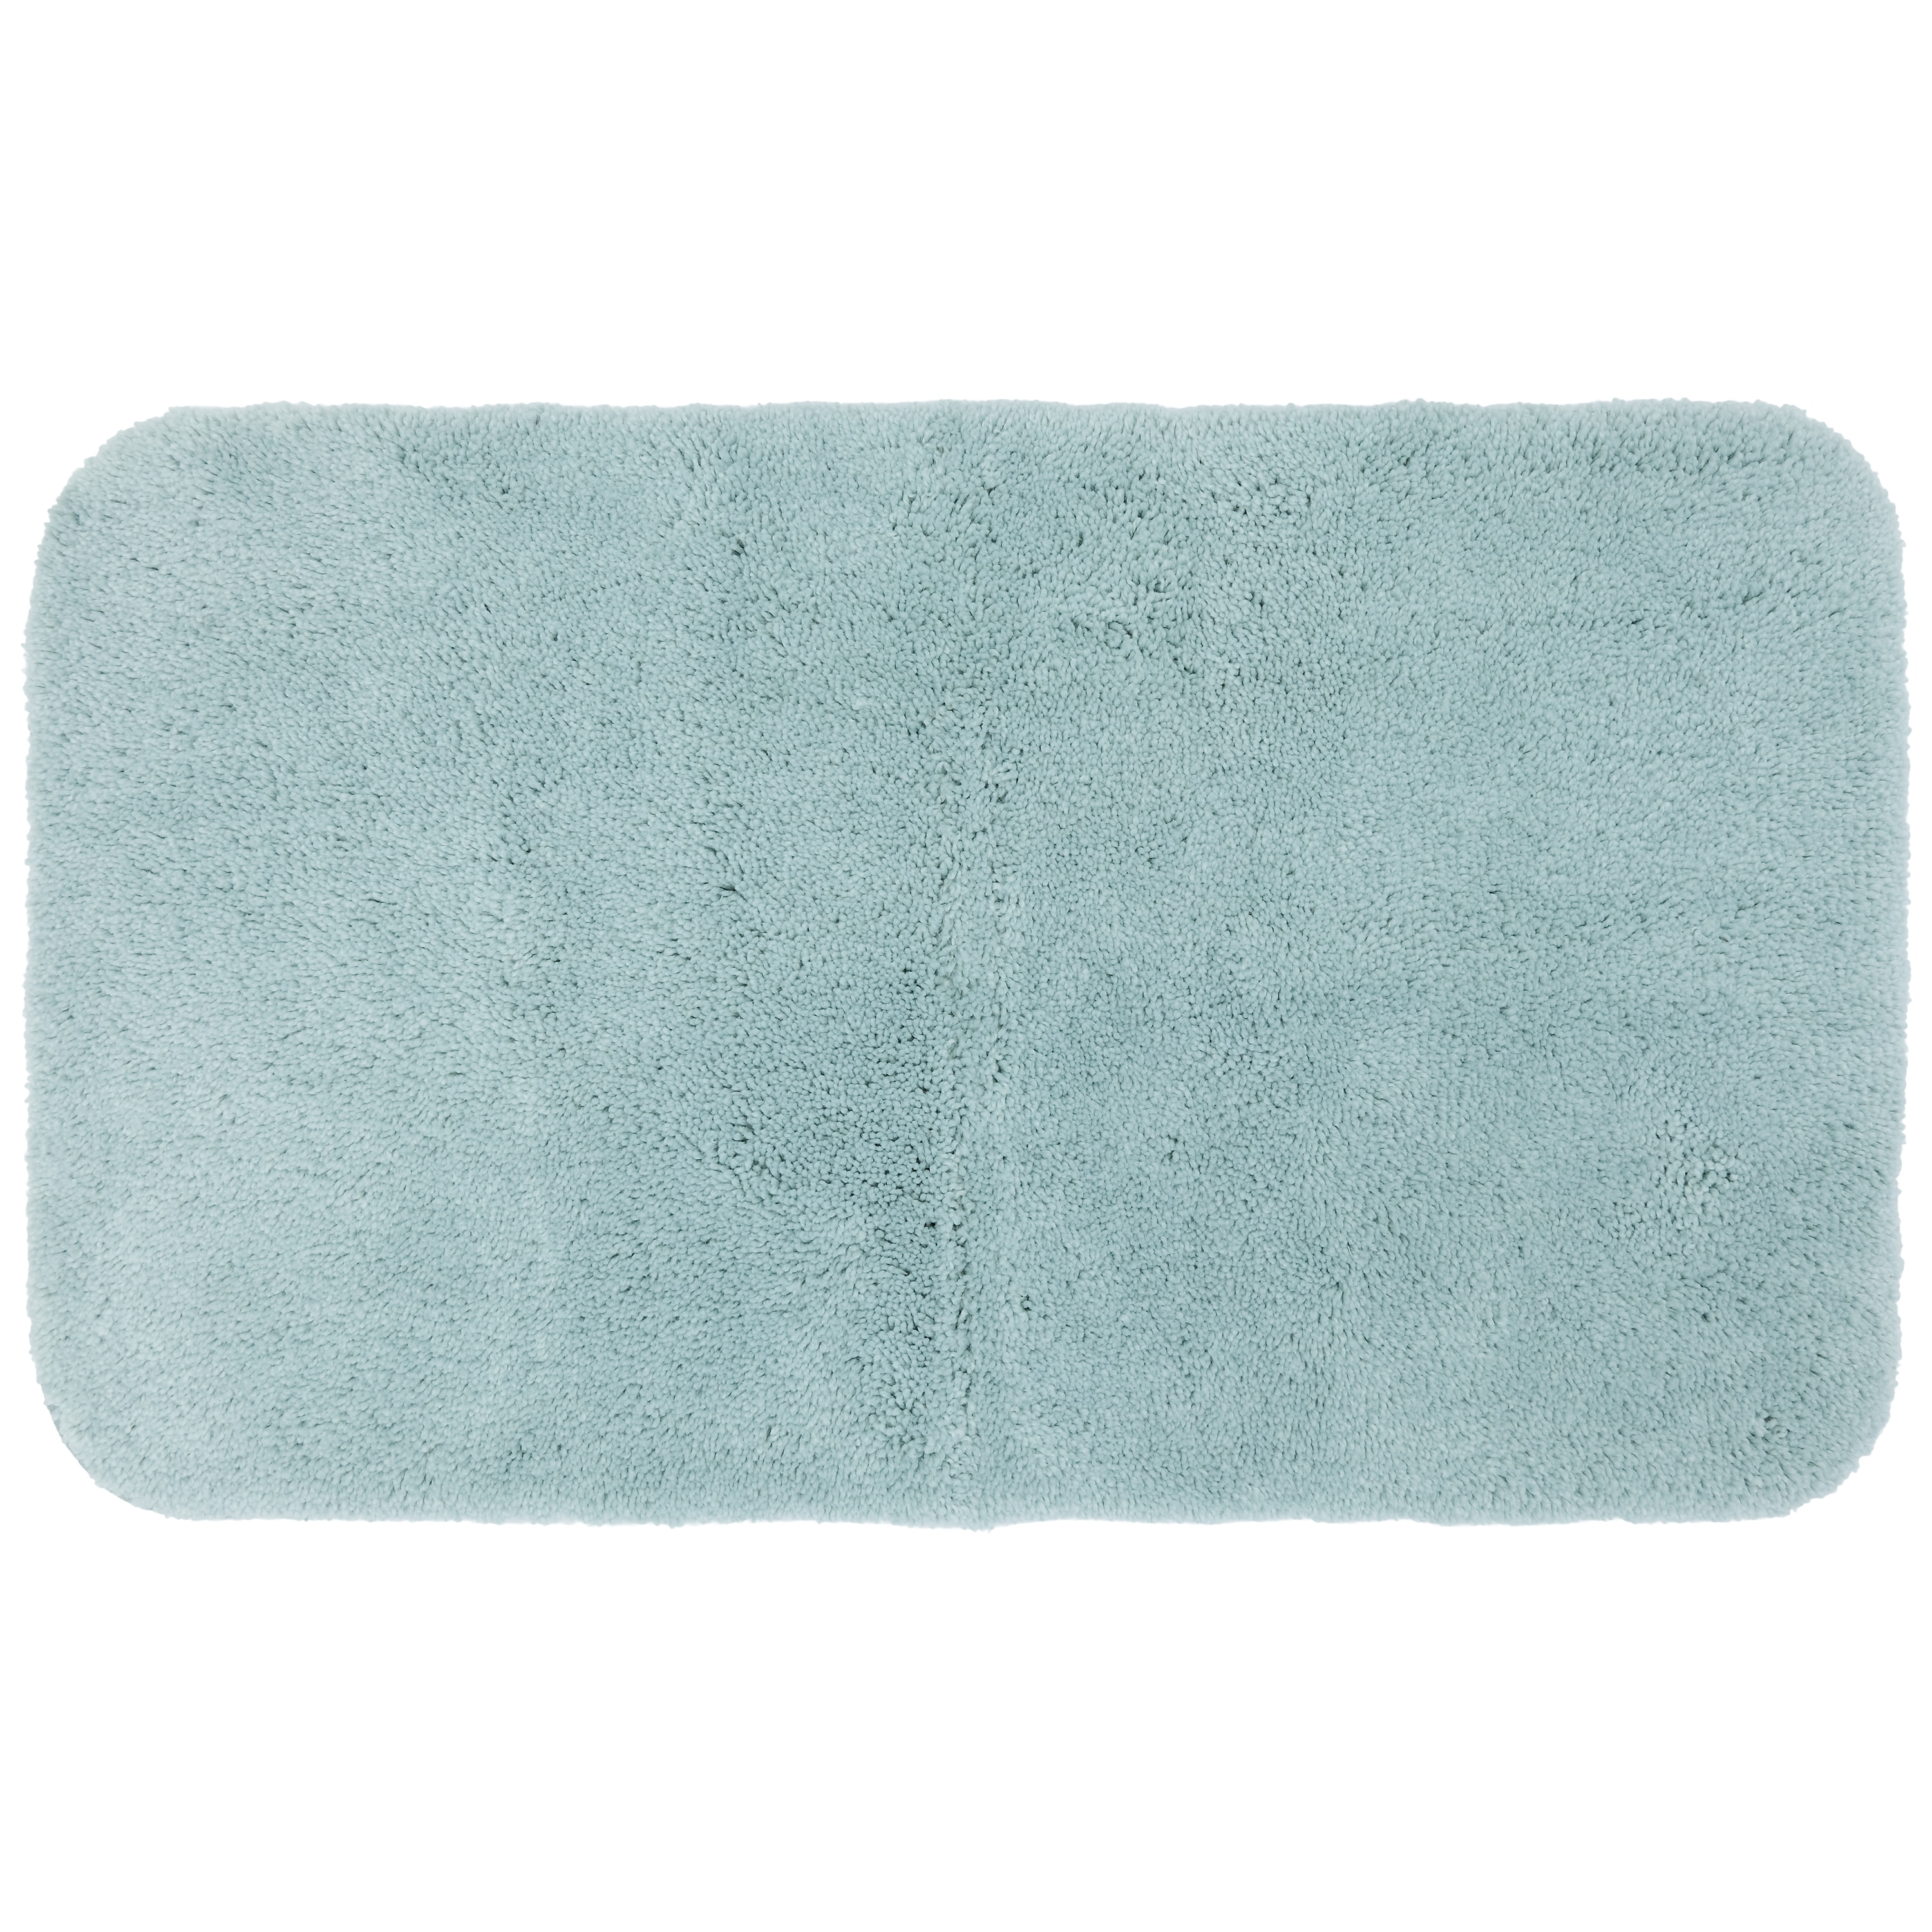 non polyester mats anti slip bacterial microdenier mat home taupe wonderful memory rugs bath in bathroom foam mohawk x